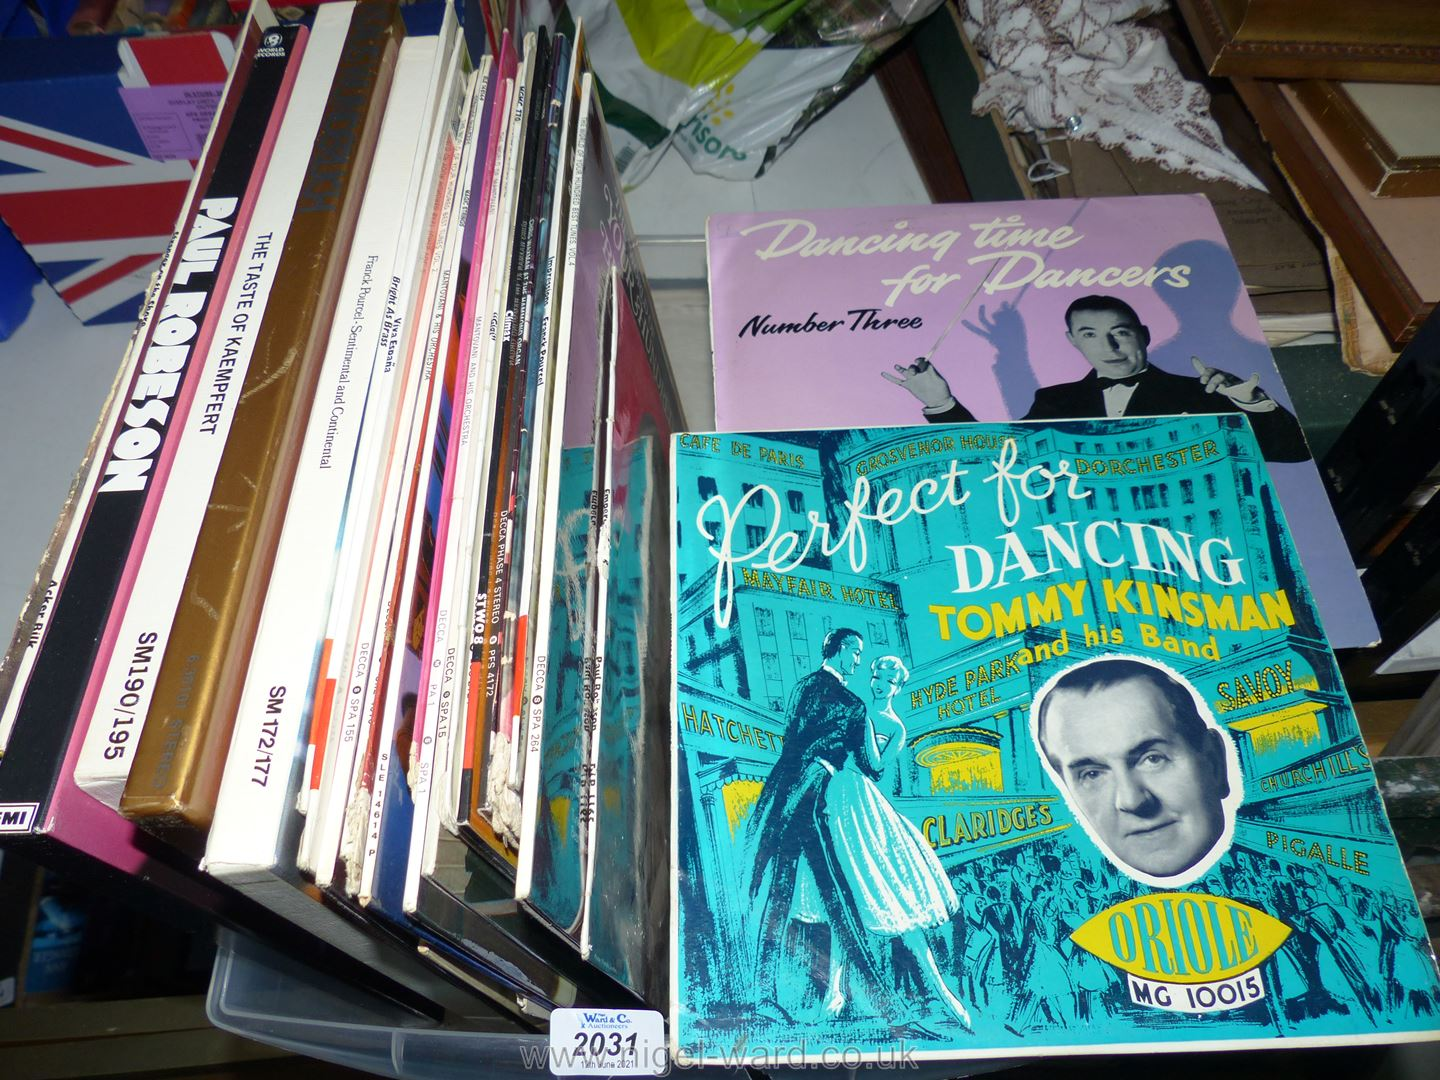 A plastic box of classical L.P's including Mantovani, Magic strings by Norman Candler, etc.